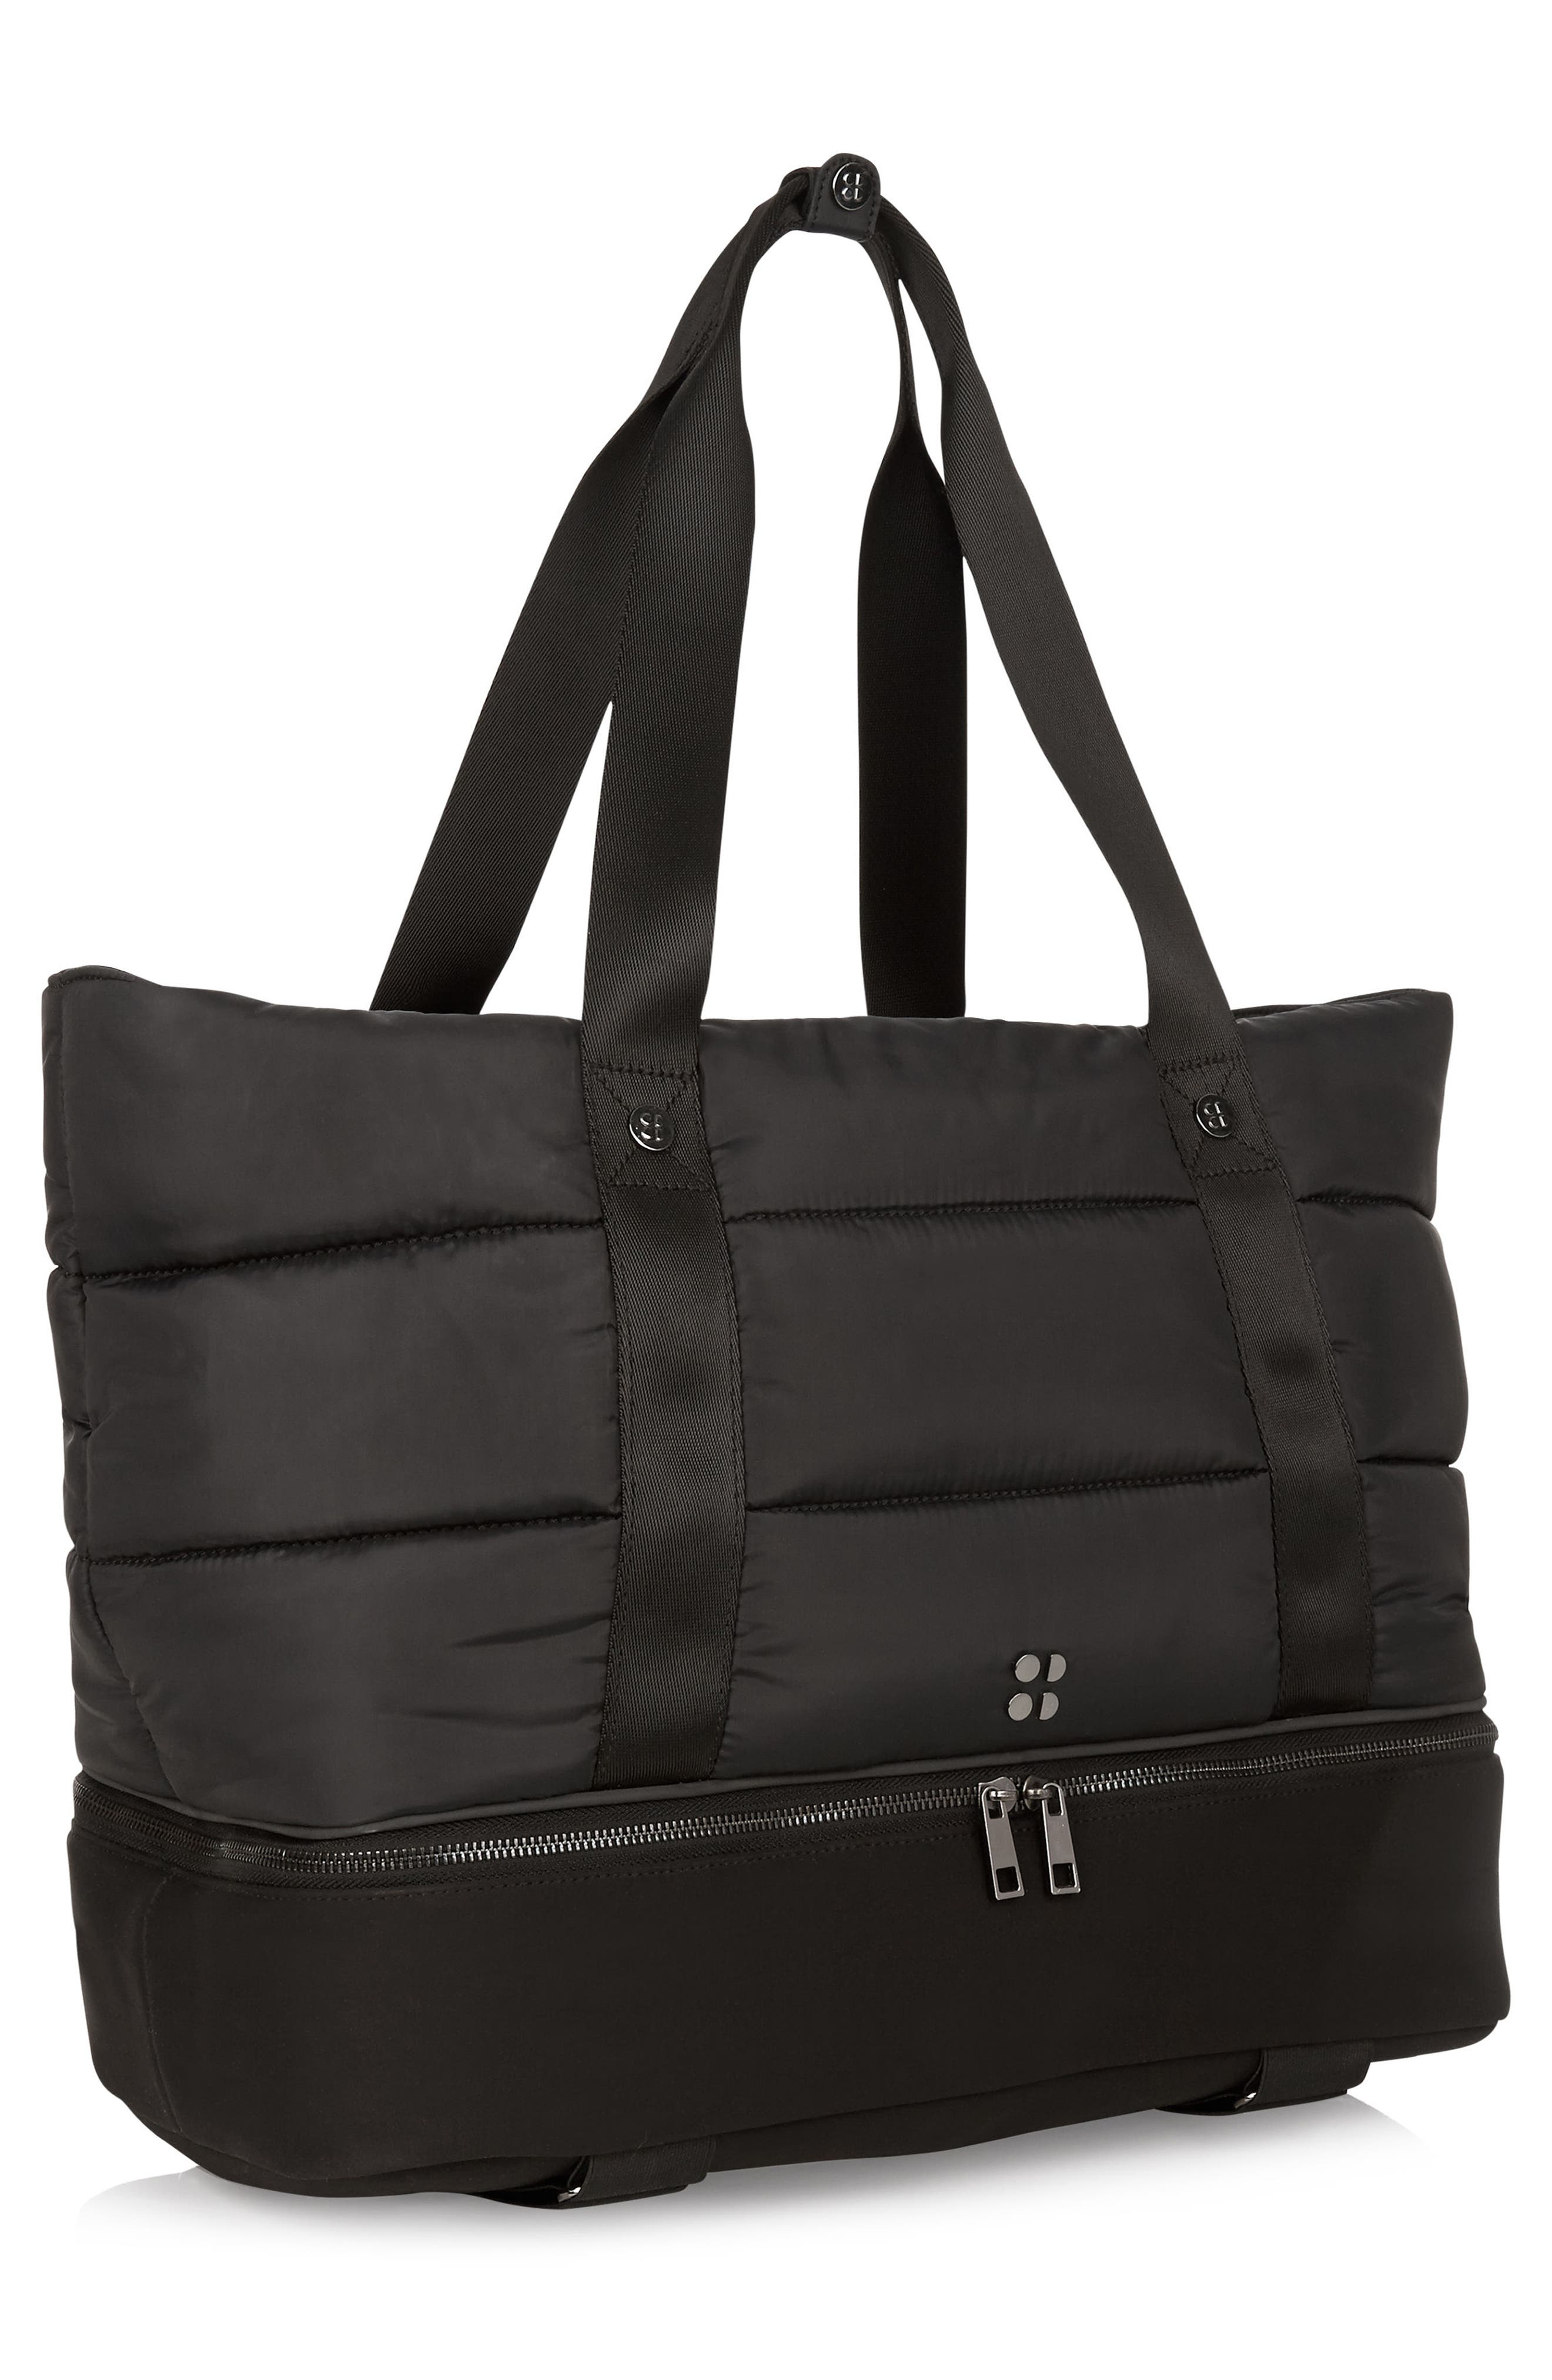 Sweat Betty Luxe Gym Bag,                             Alternate thumbnail 3, color,                             Black